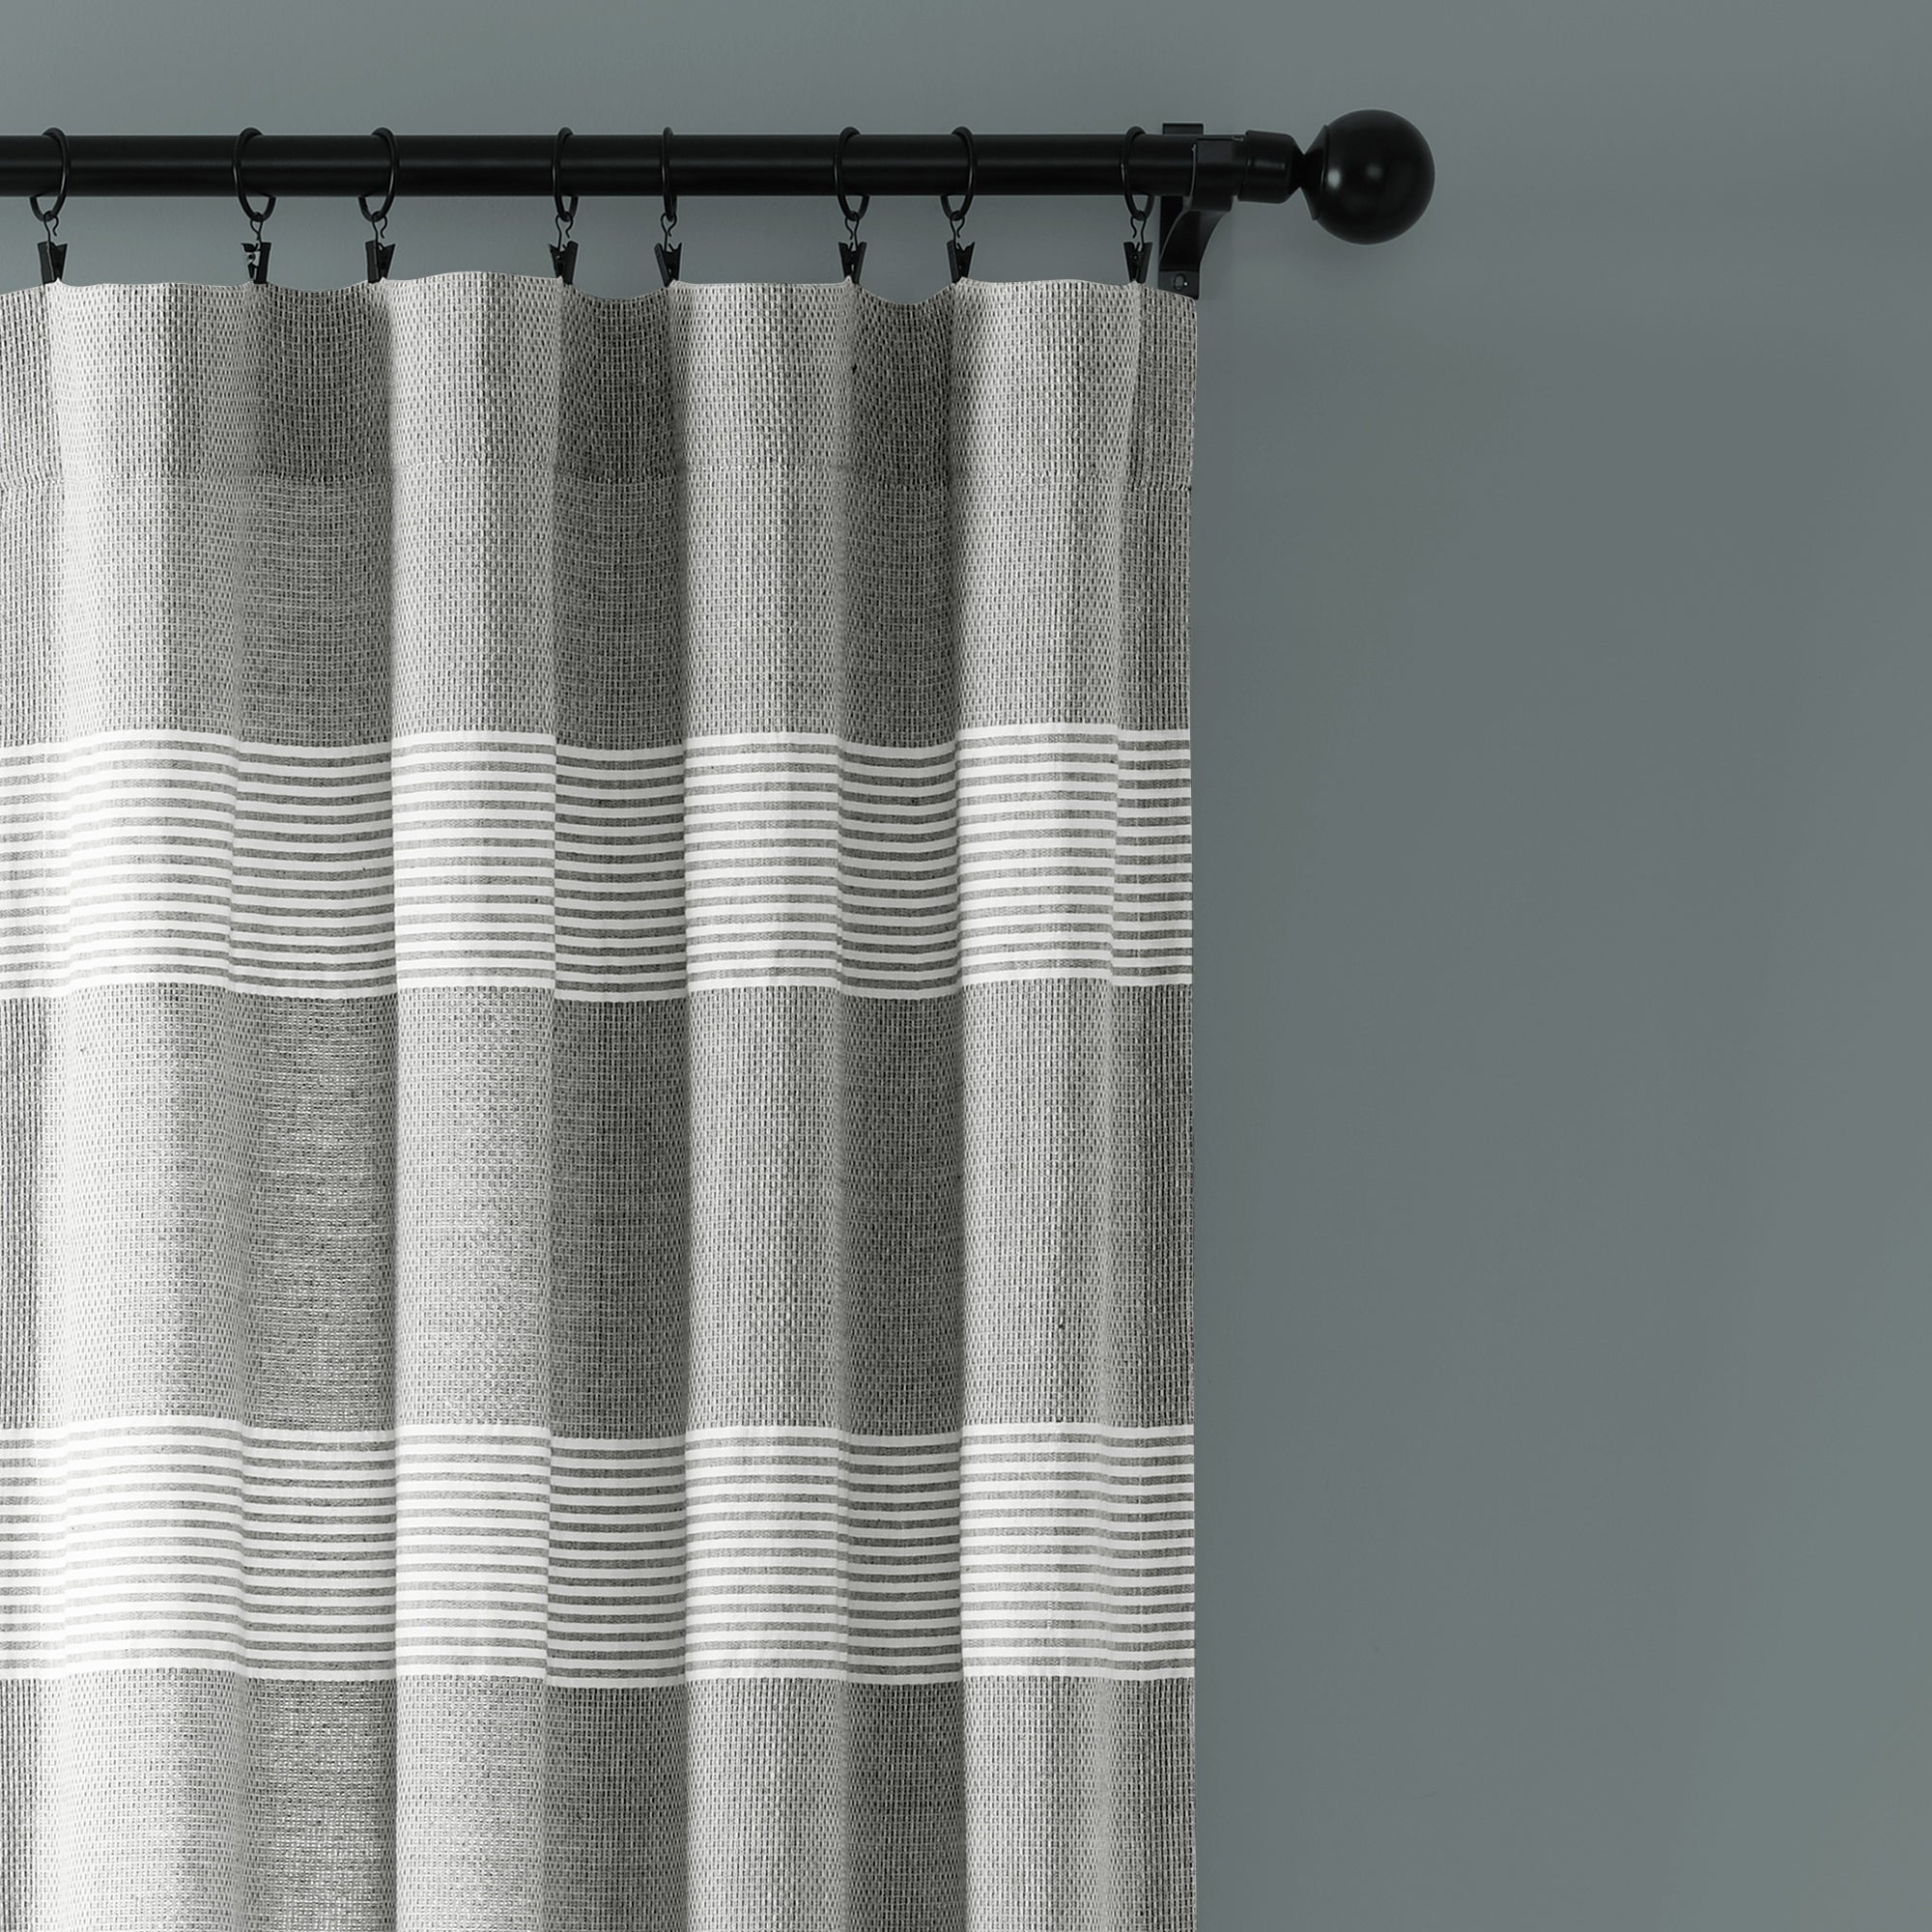 Ombre Stripe Yarn Dyed Cotton Window Curtain Panel Pairs With Regard To Most Current Lush Decor Tucker Stripe Yarn Dyed Cotton Knotted Tassel Window Curtain  Panel Pair (View 17 of 20)